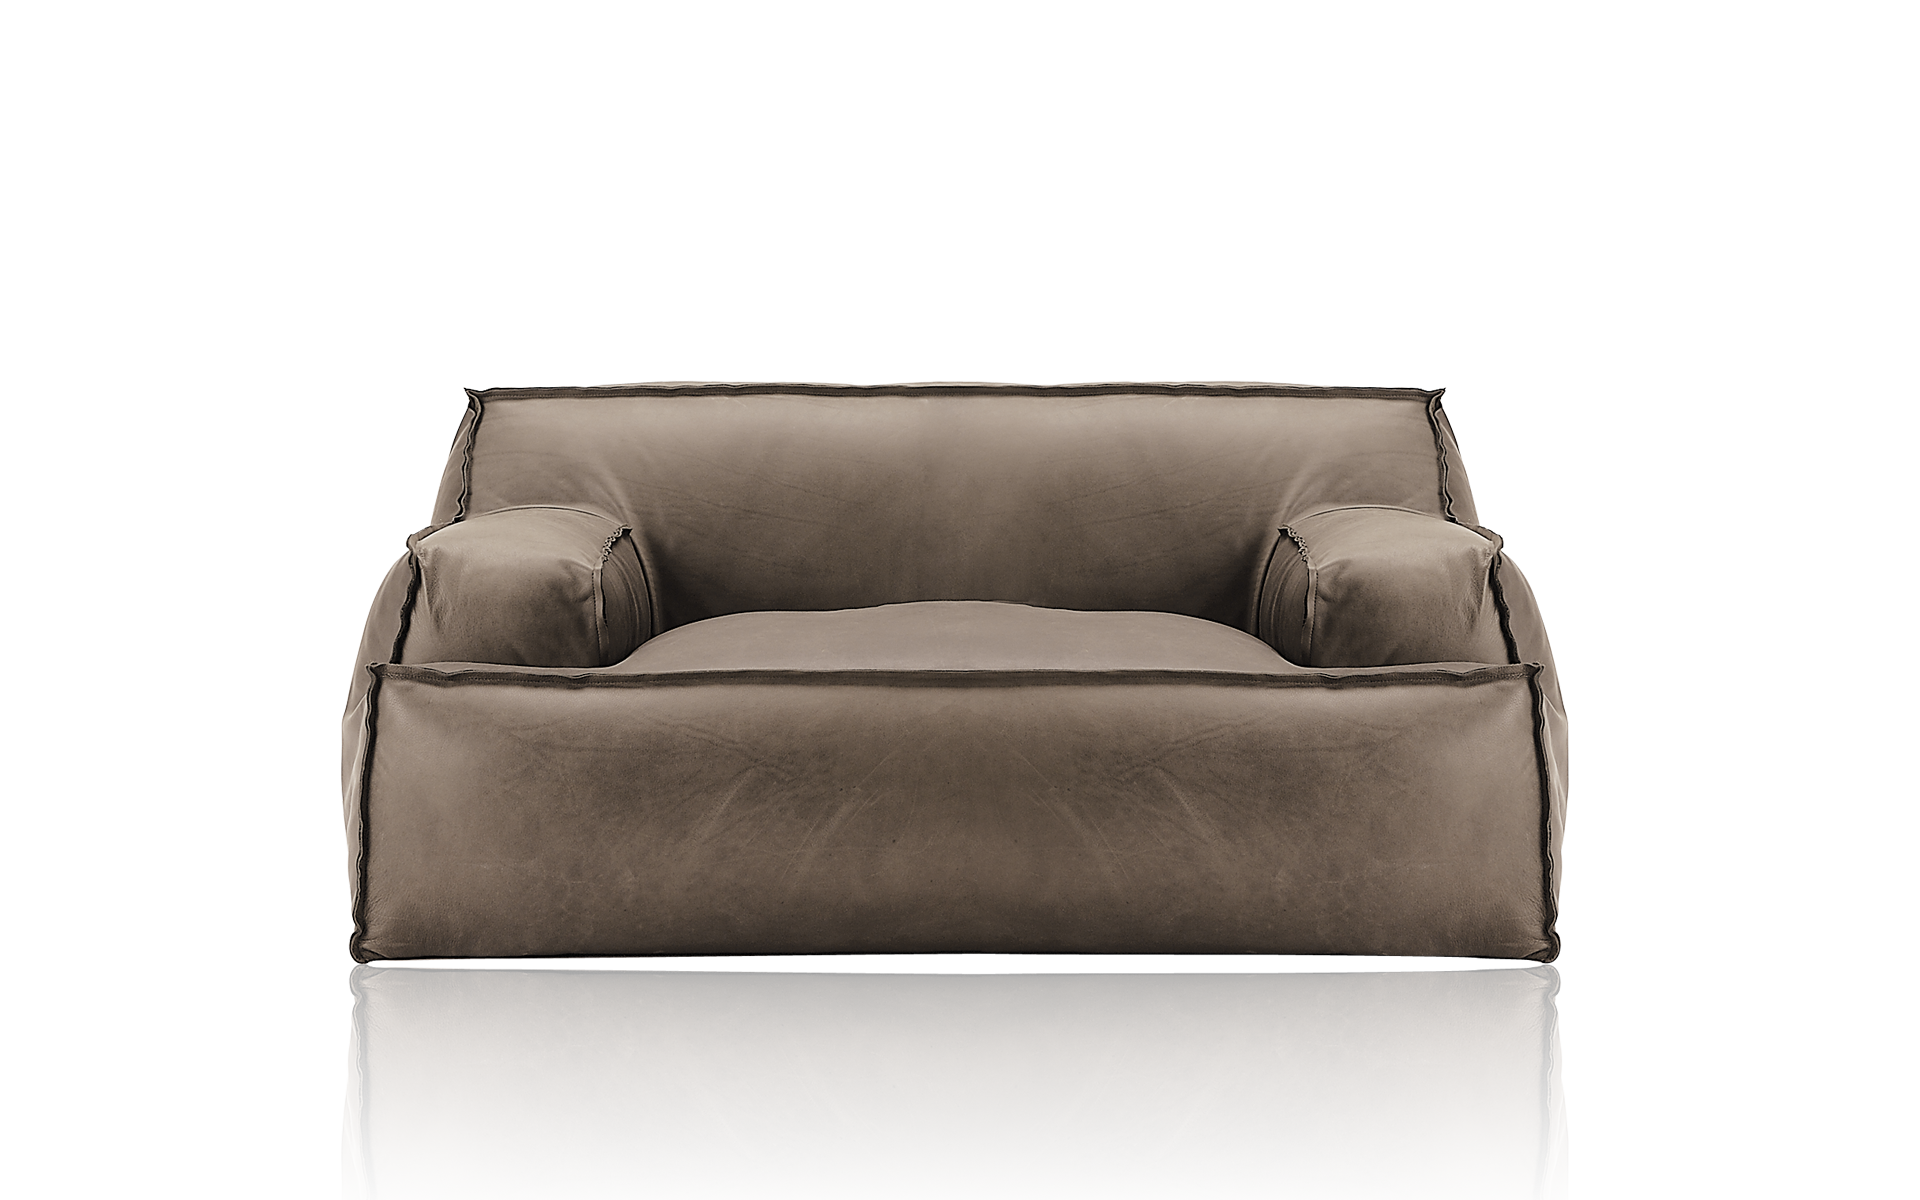 Prince modular sofa and Belt low table by Meridiani design Andrea